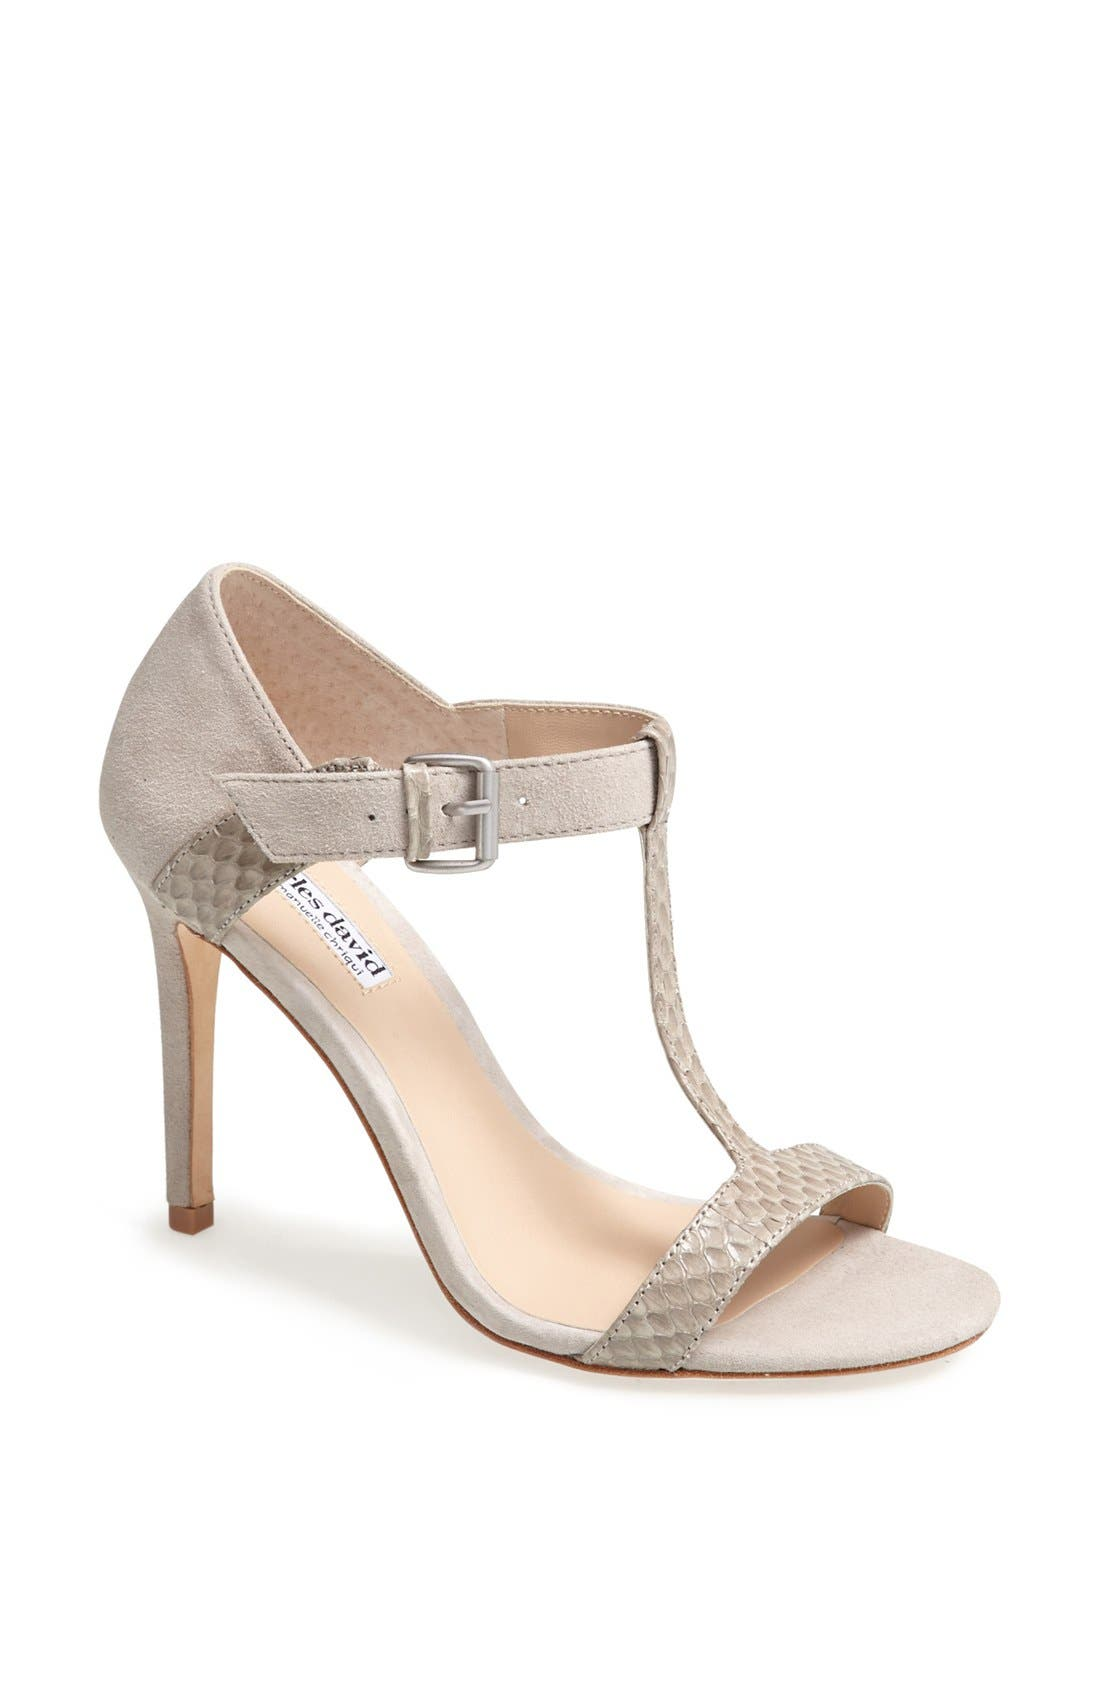 Main Image - Charles David 'Imana' Snake Embossed Leather & Suede Sandal